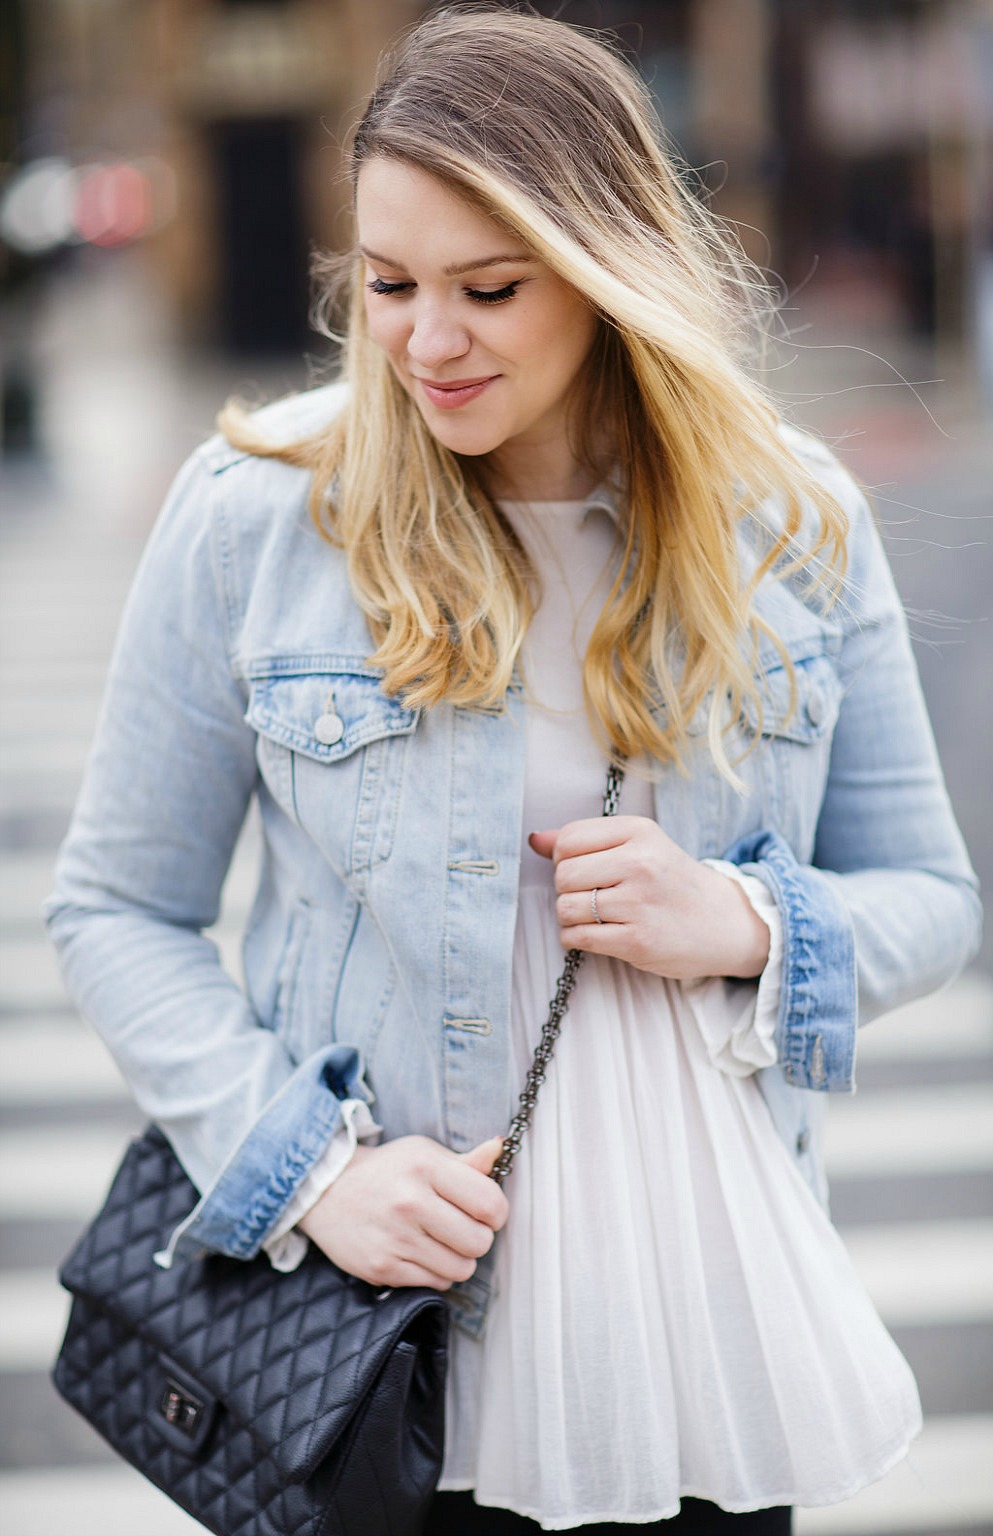 MATERNITY-STYLE-FASHION-PREGNANCY-ROSECITYSTYLEGUIDE-CANADIAN-BLOGGER-JEAN-JACKET-SNEAKERS-DETROIT-1